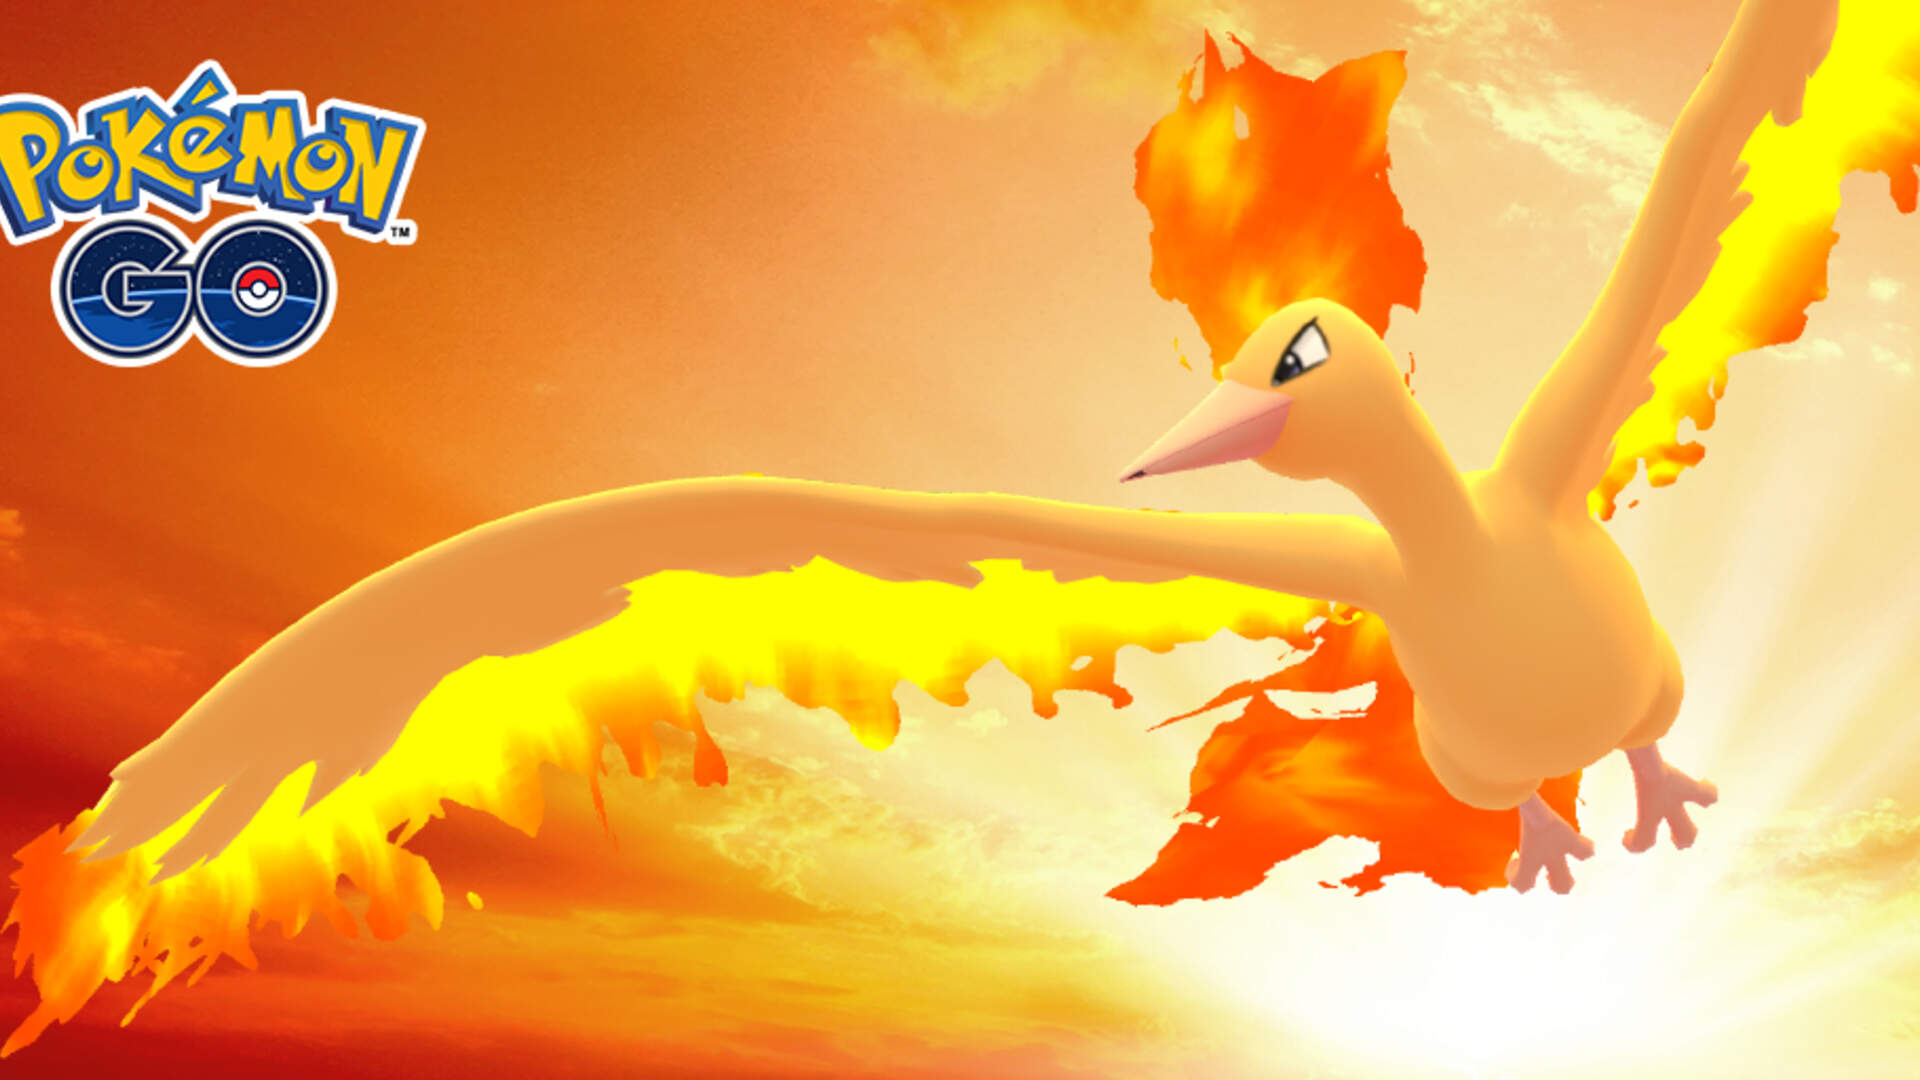 Pokemon GO Moltres Raid Boss - Raid Guide, Best Counters, Weakness, Shiny Moltres, Free Raid Passes, Sky Attack